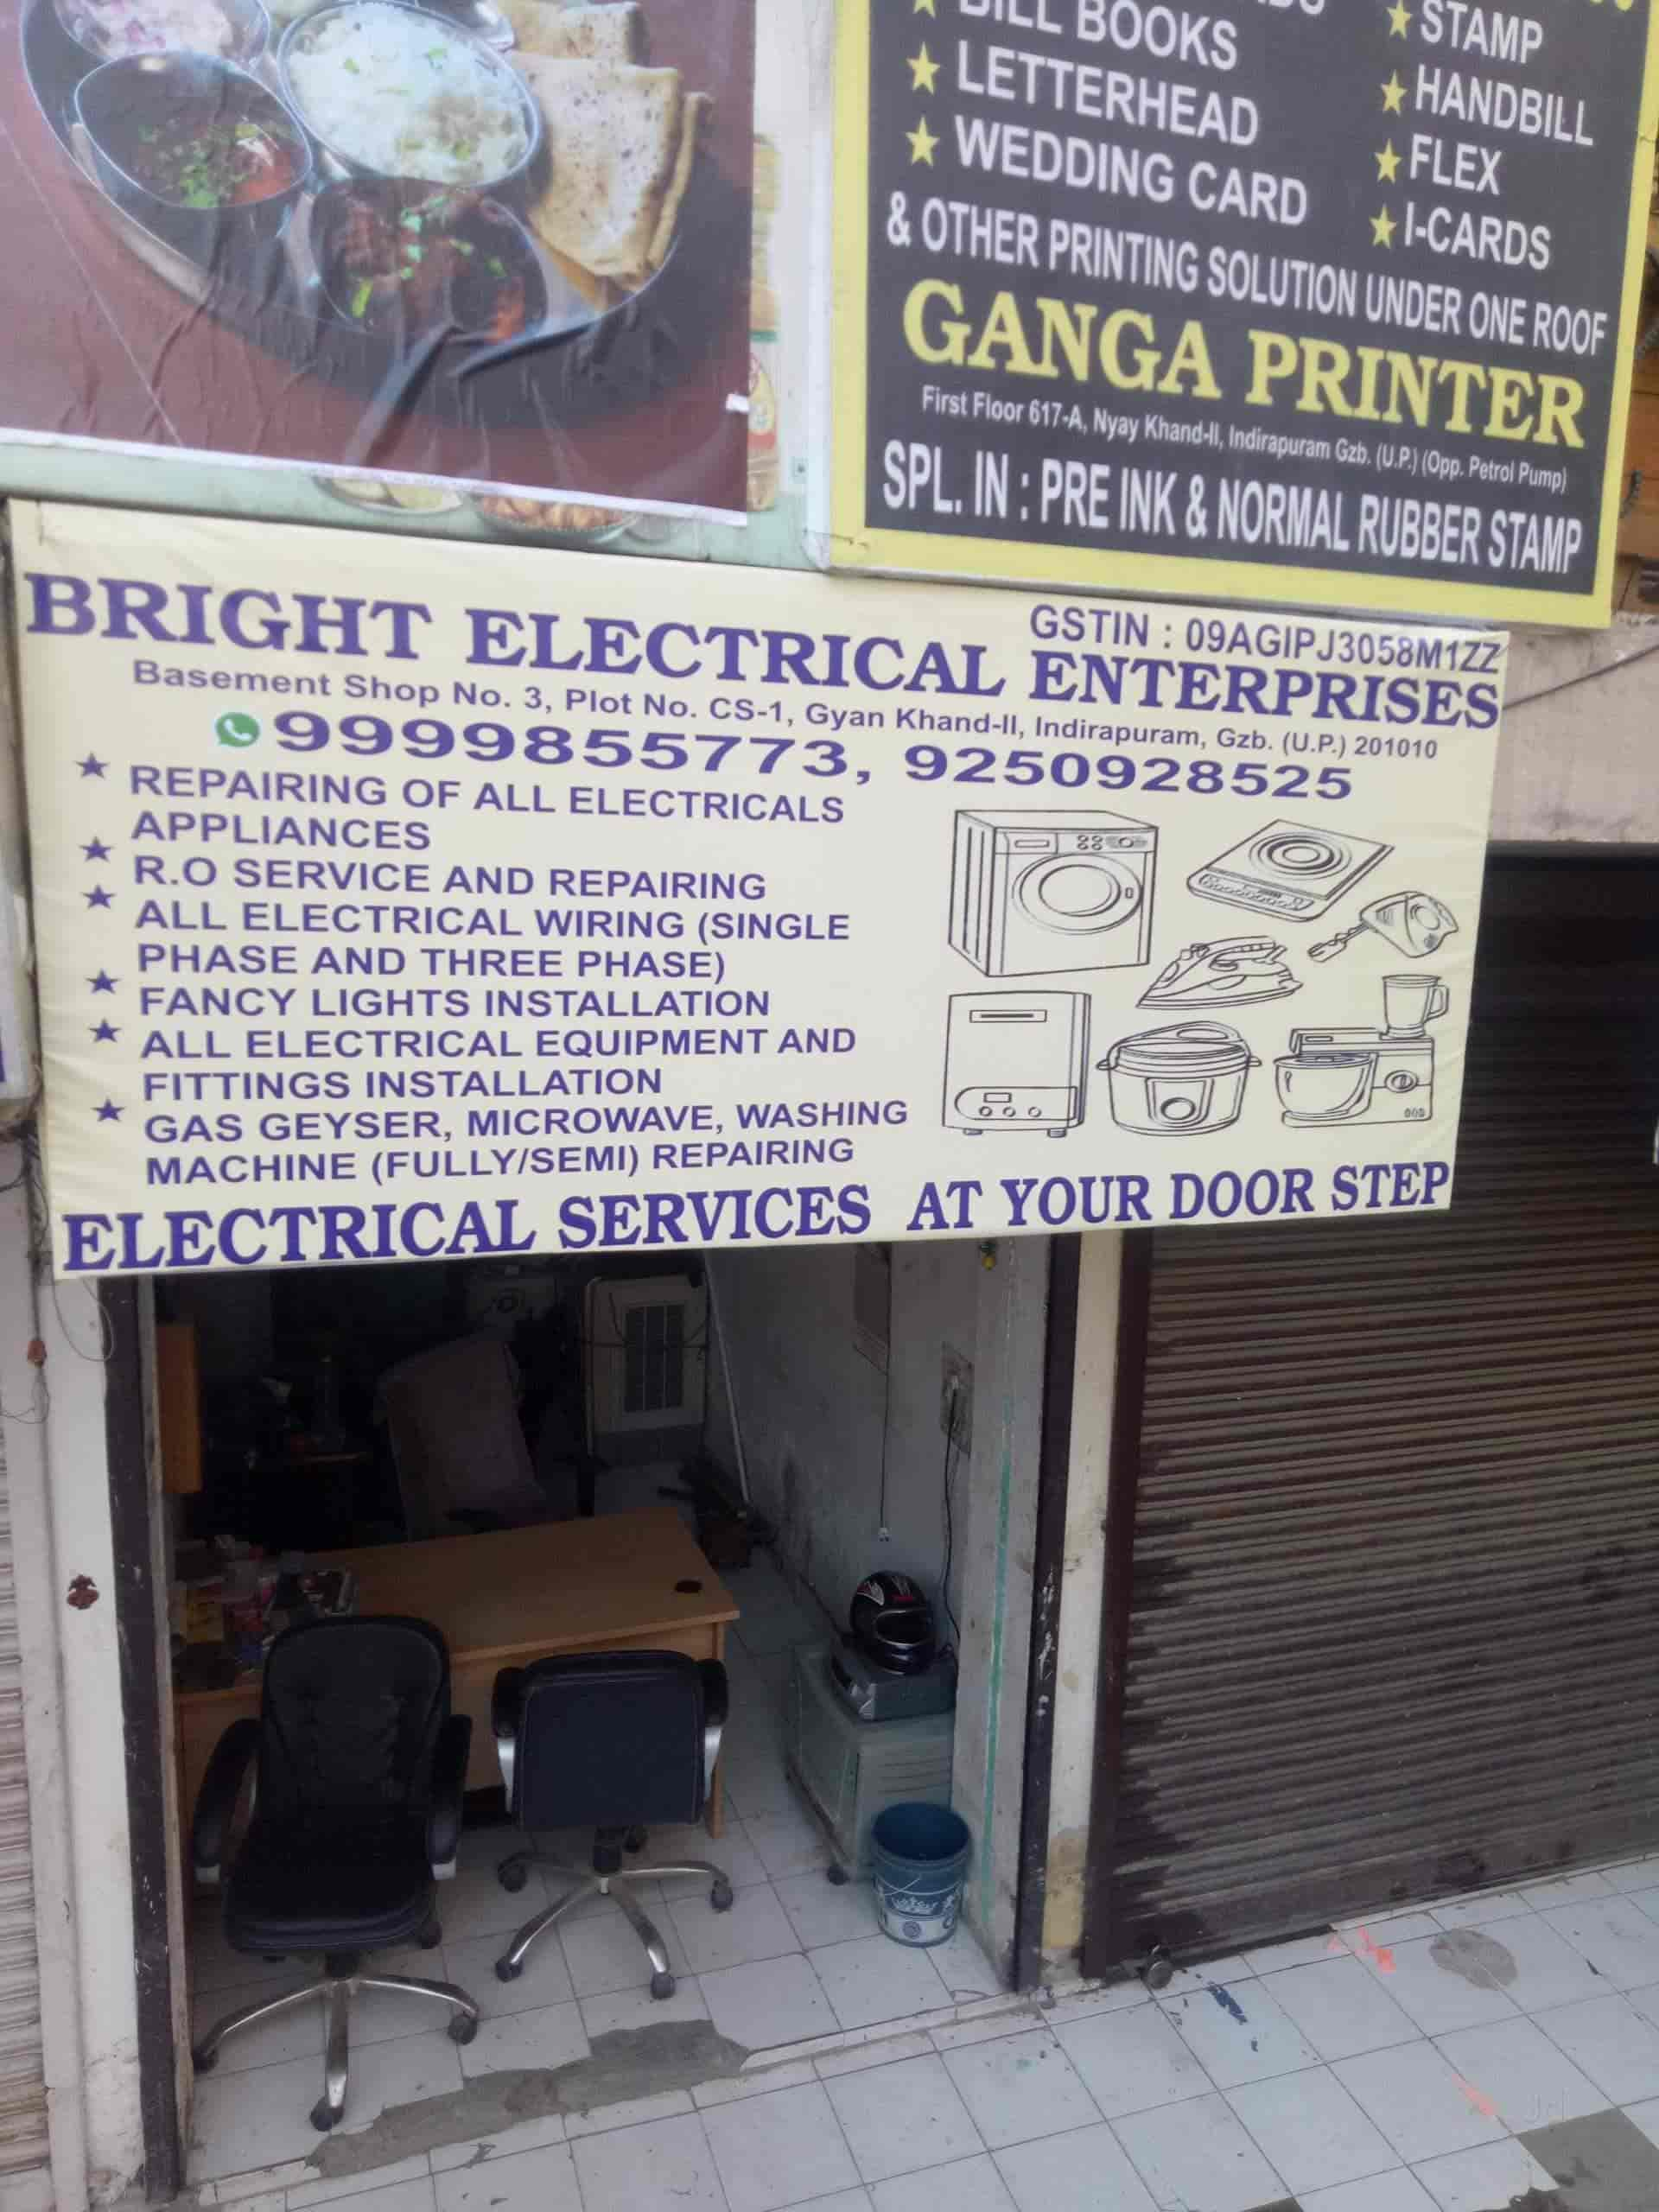 hight resolution of bright electrical nyay khand 2 indirapuram electrical contractors in ghaziabad delhi justdial